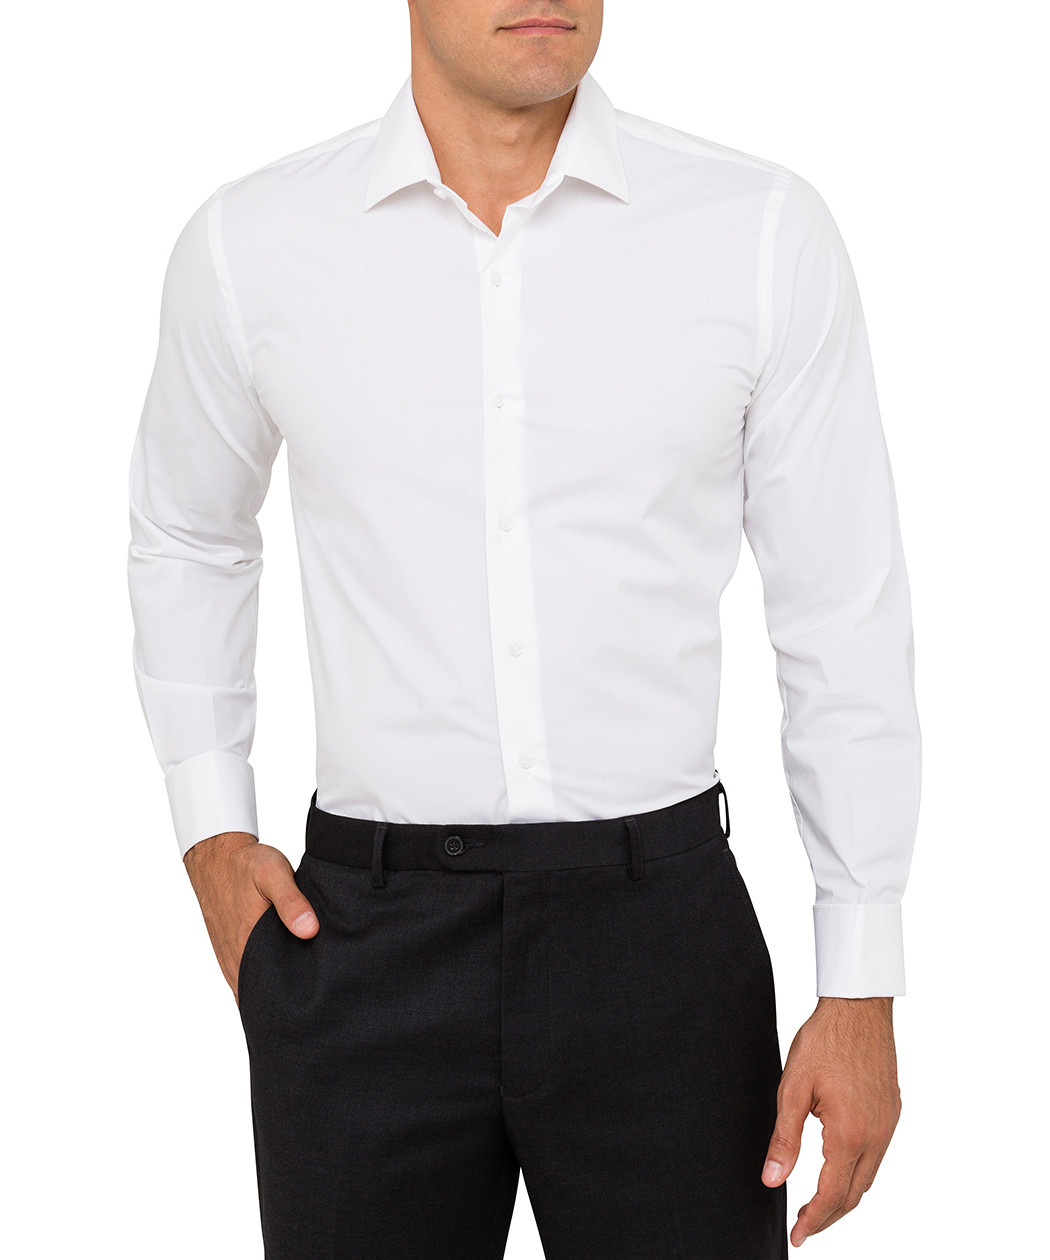 The Perfect White Shirt is a garments and graphic design company based in the Philippines. Our Company became operational in February We initially started by selling plain shirts or what we call